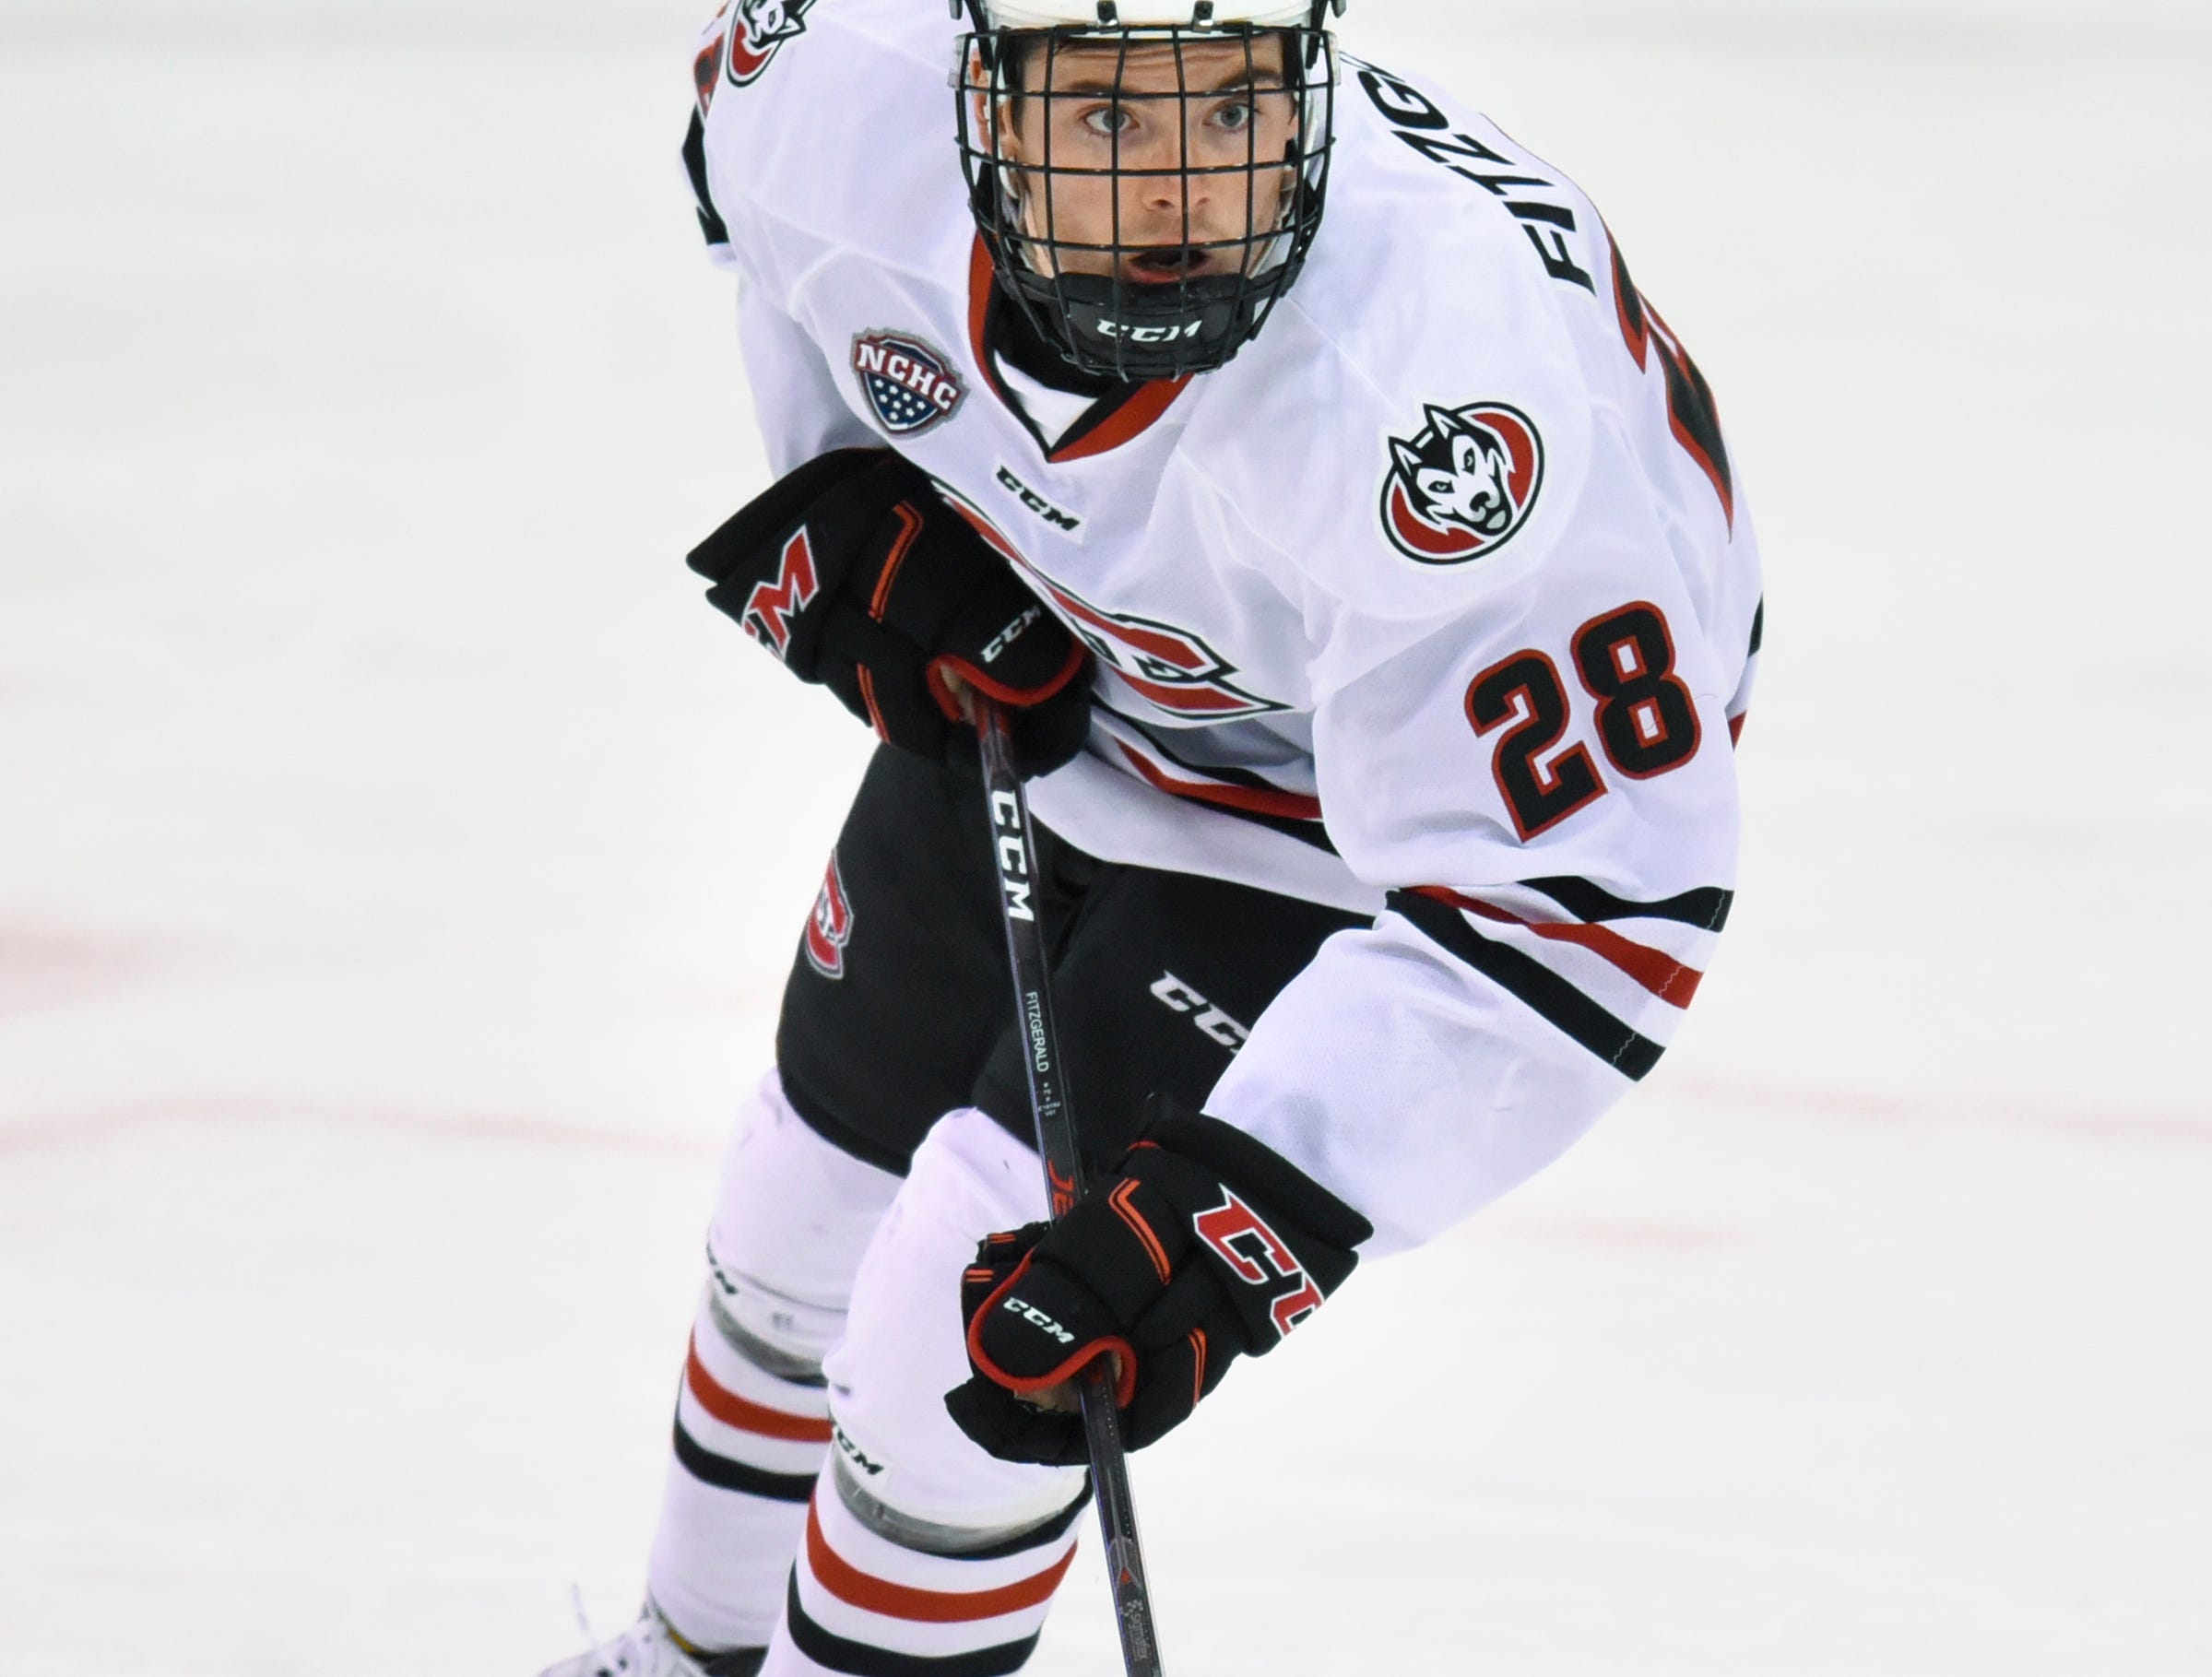 St. Cloud State's Kevin Fitzgerald skates with the puck during the first period of the Friday, Nov. 9, game against Denver at the Herb Brooks National Hockey Center in St. Cloud.